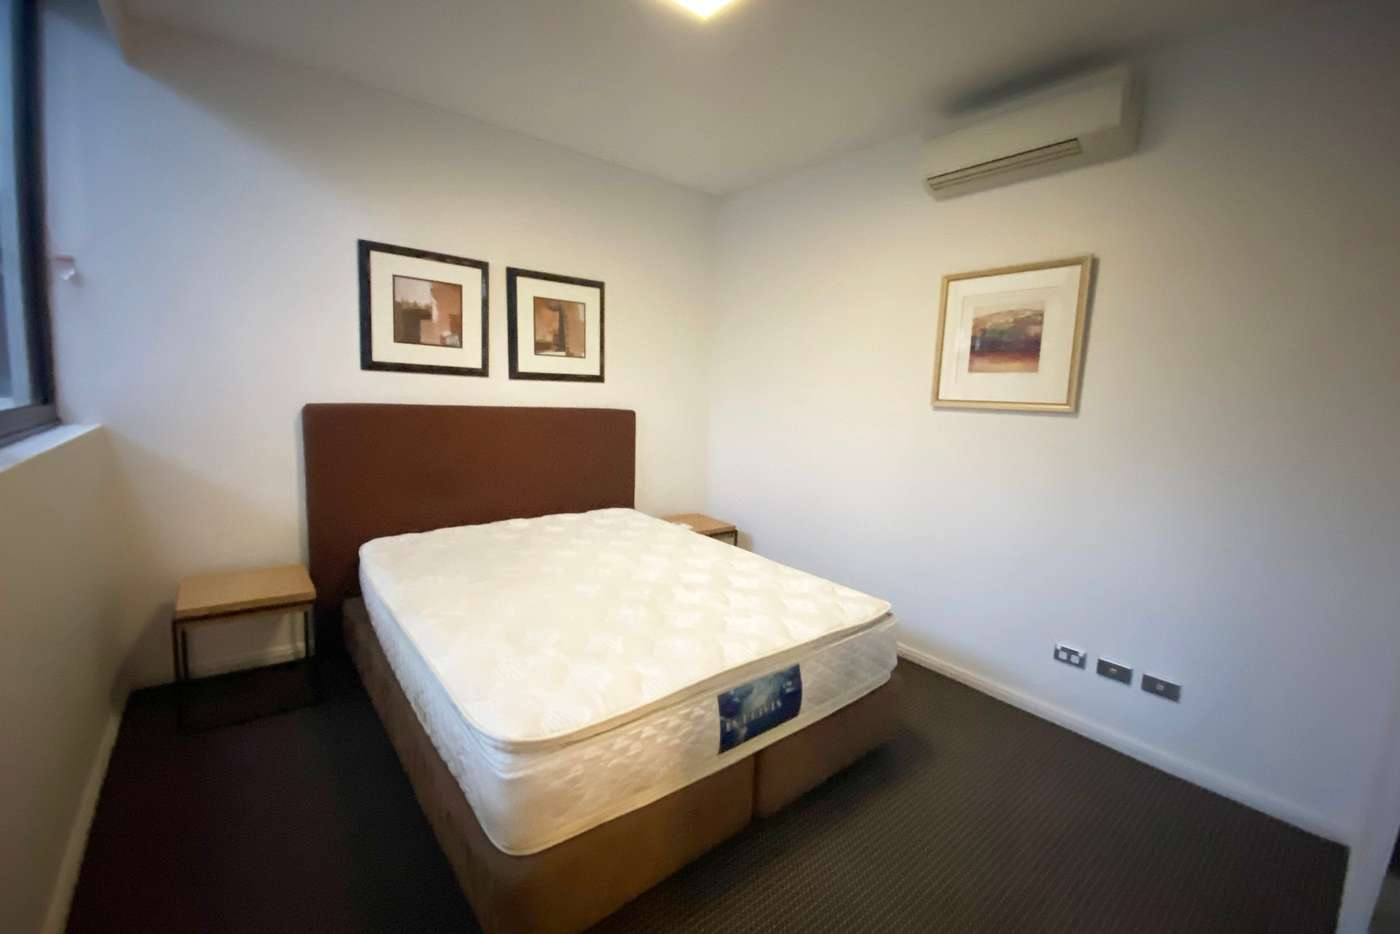 Seventh view of Homely apartment listing, 431/5 Defries Avenue, Zetland NSW 2017